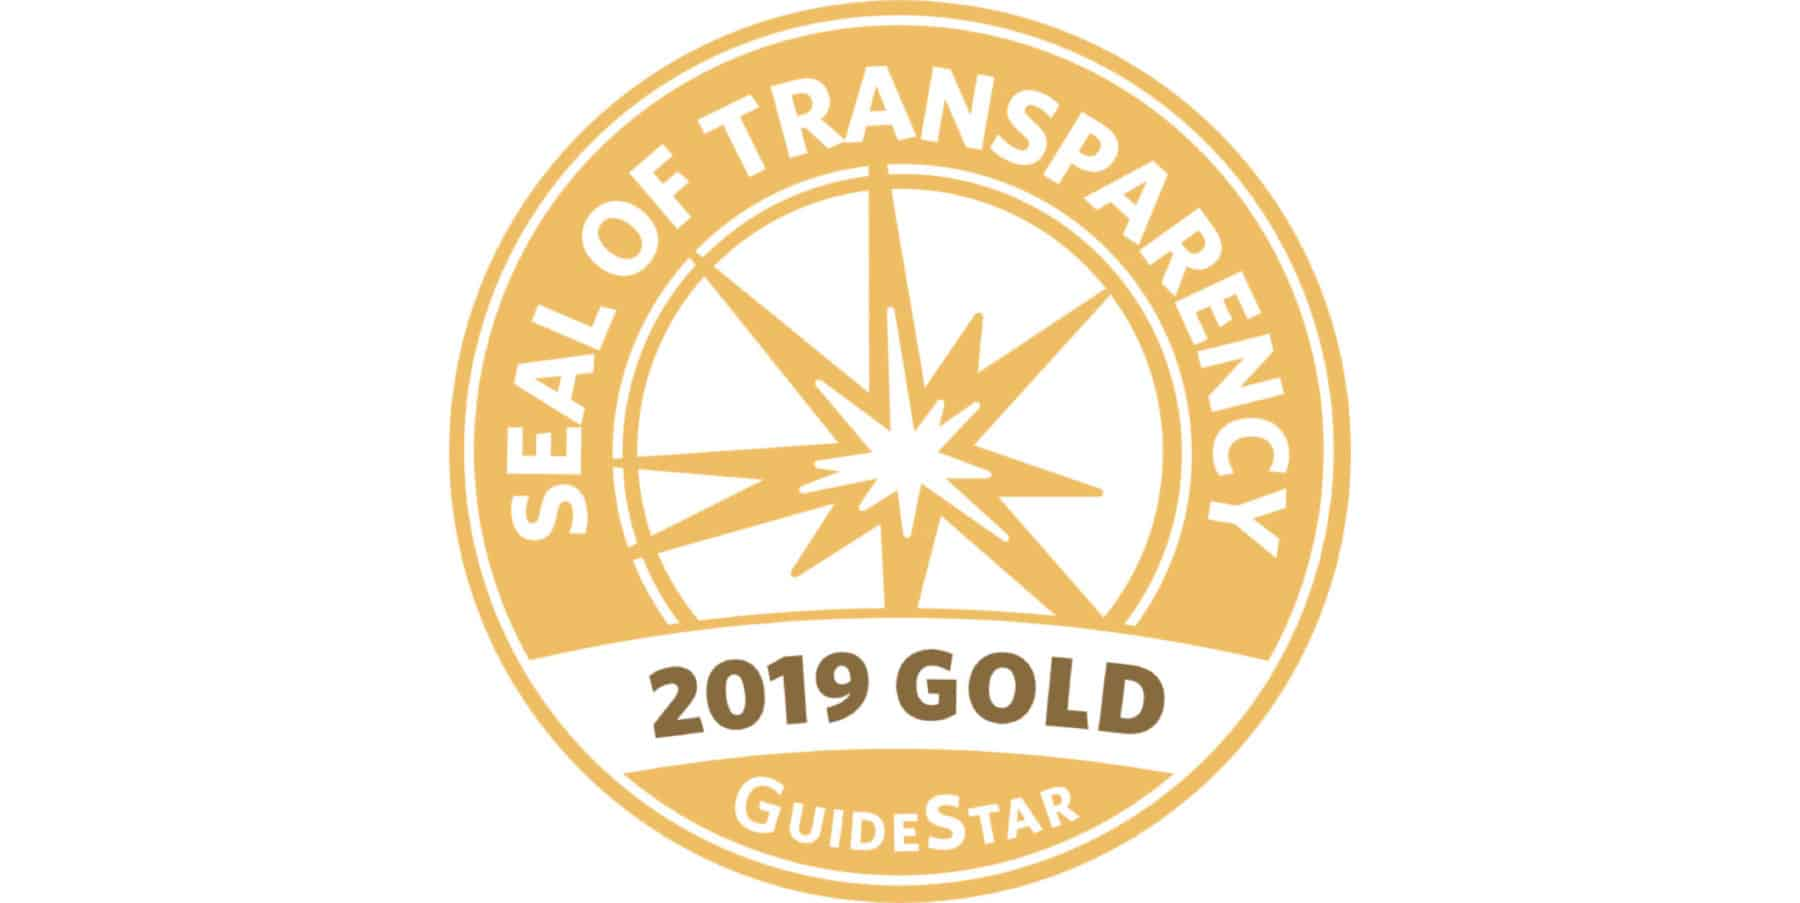 guideStarSeal_2019_gold.jpg